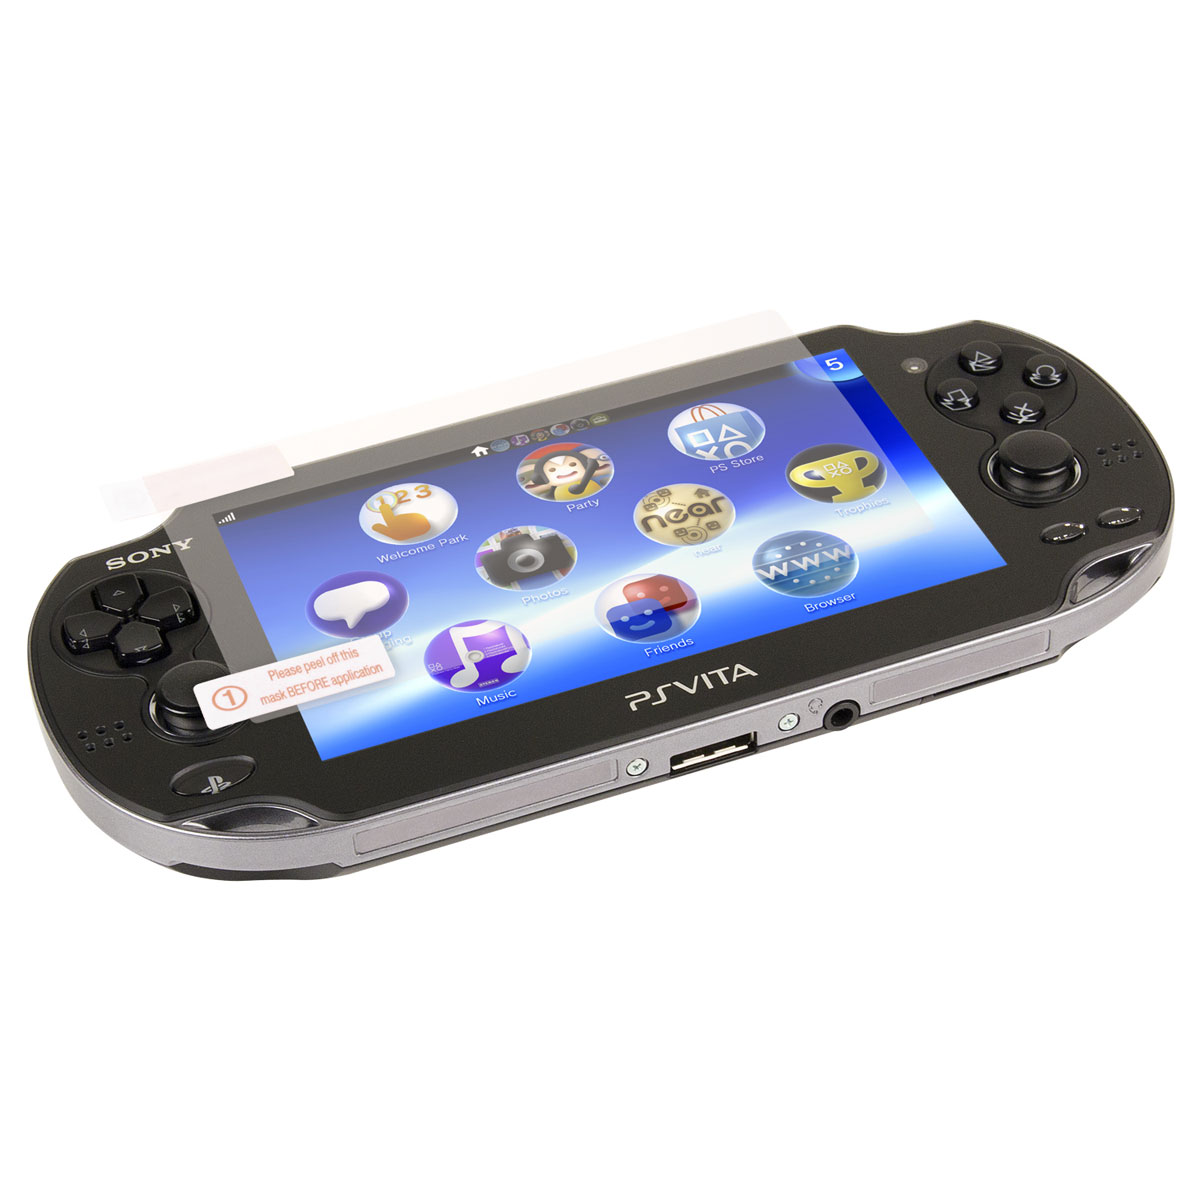 madcatz films protecteurs anti glare ps vita nov79612bs21 32 8 achat vente accessoires. Black Bedroom Furniture Sets. Home Design Ideas